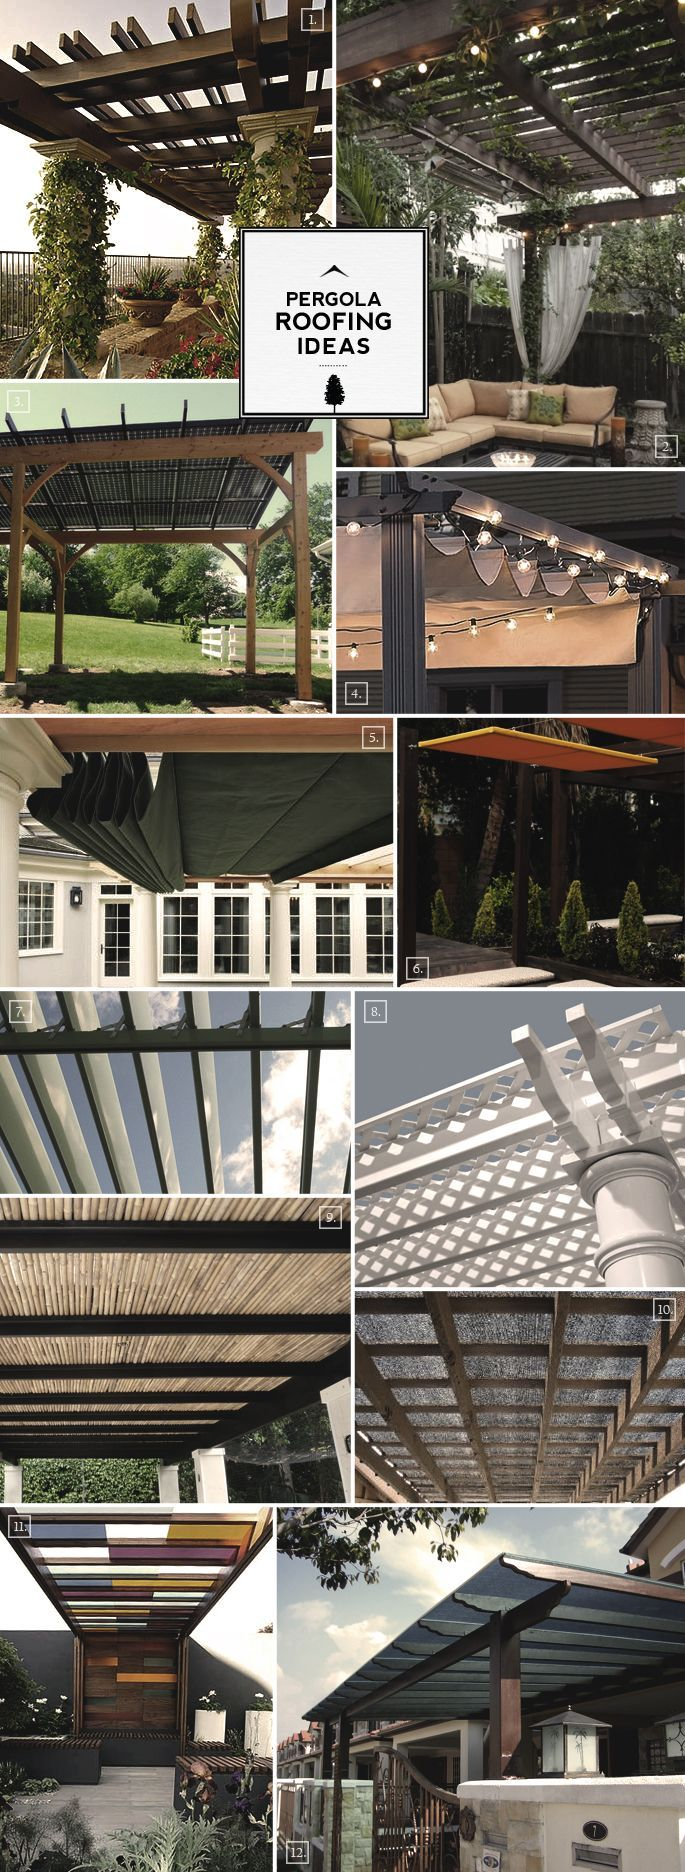 Pergola Roofing Design Ideas: From the Natural to the Motorized